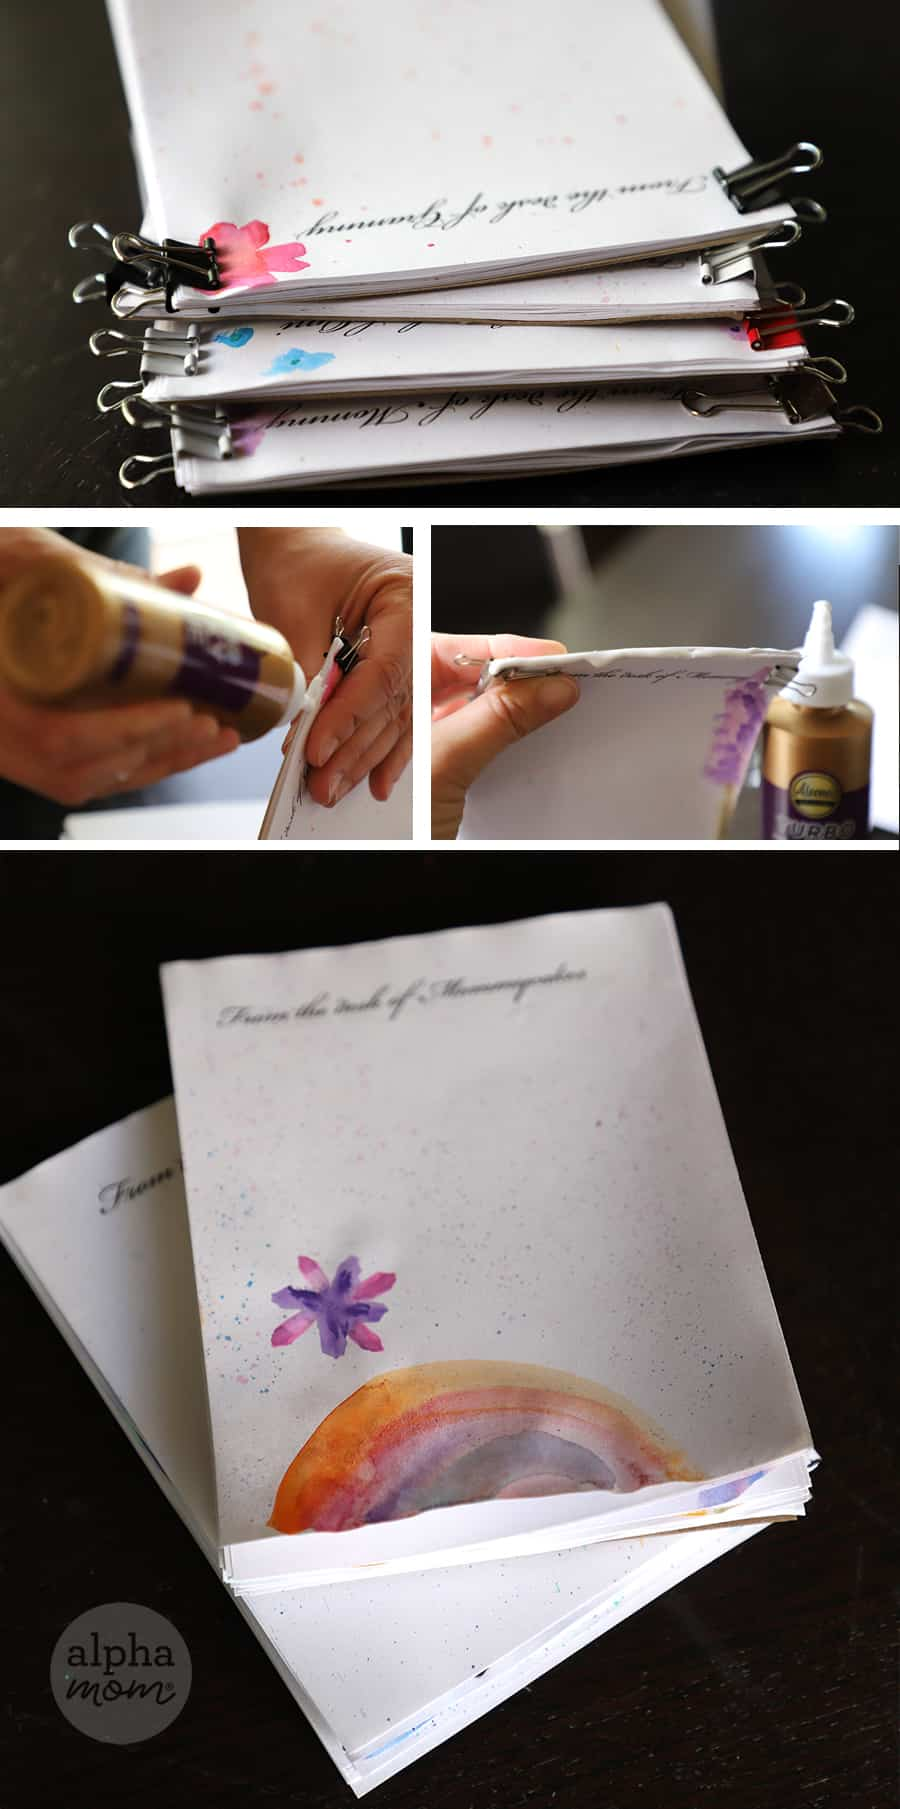 close-up picture of handmade notepads that read From the Desk of Grammy